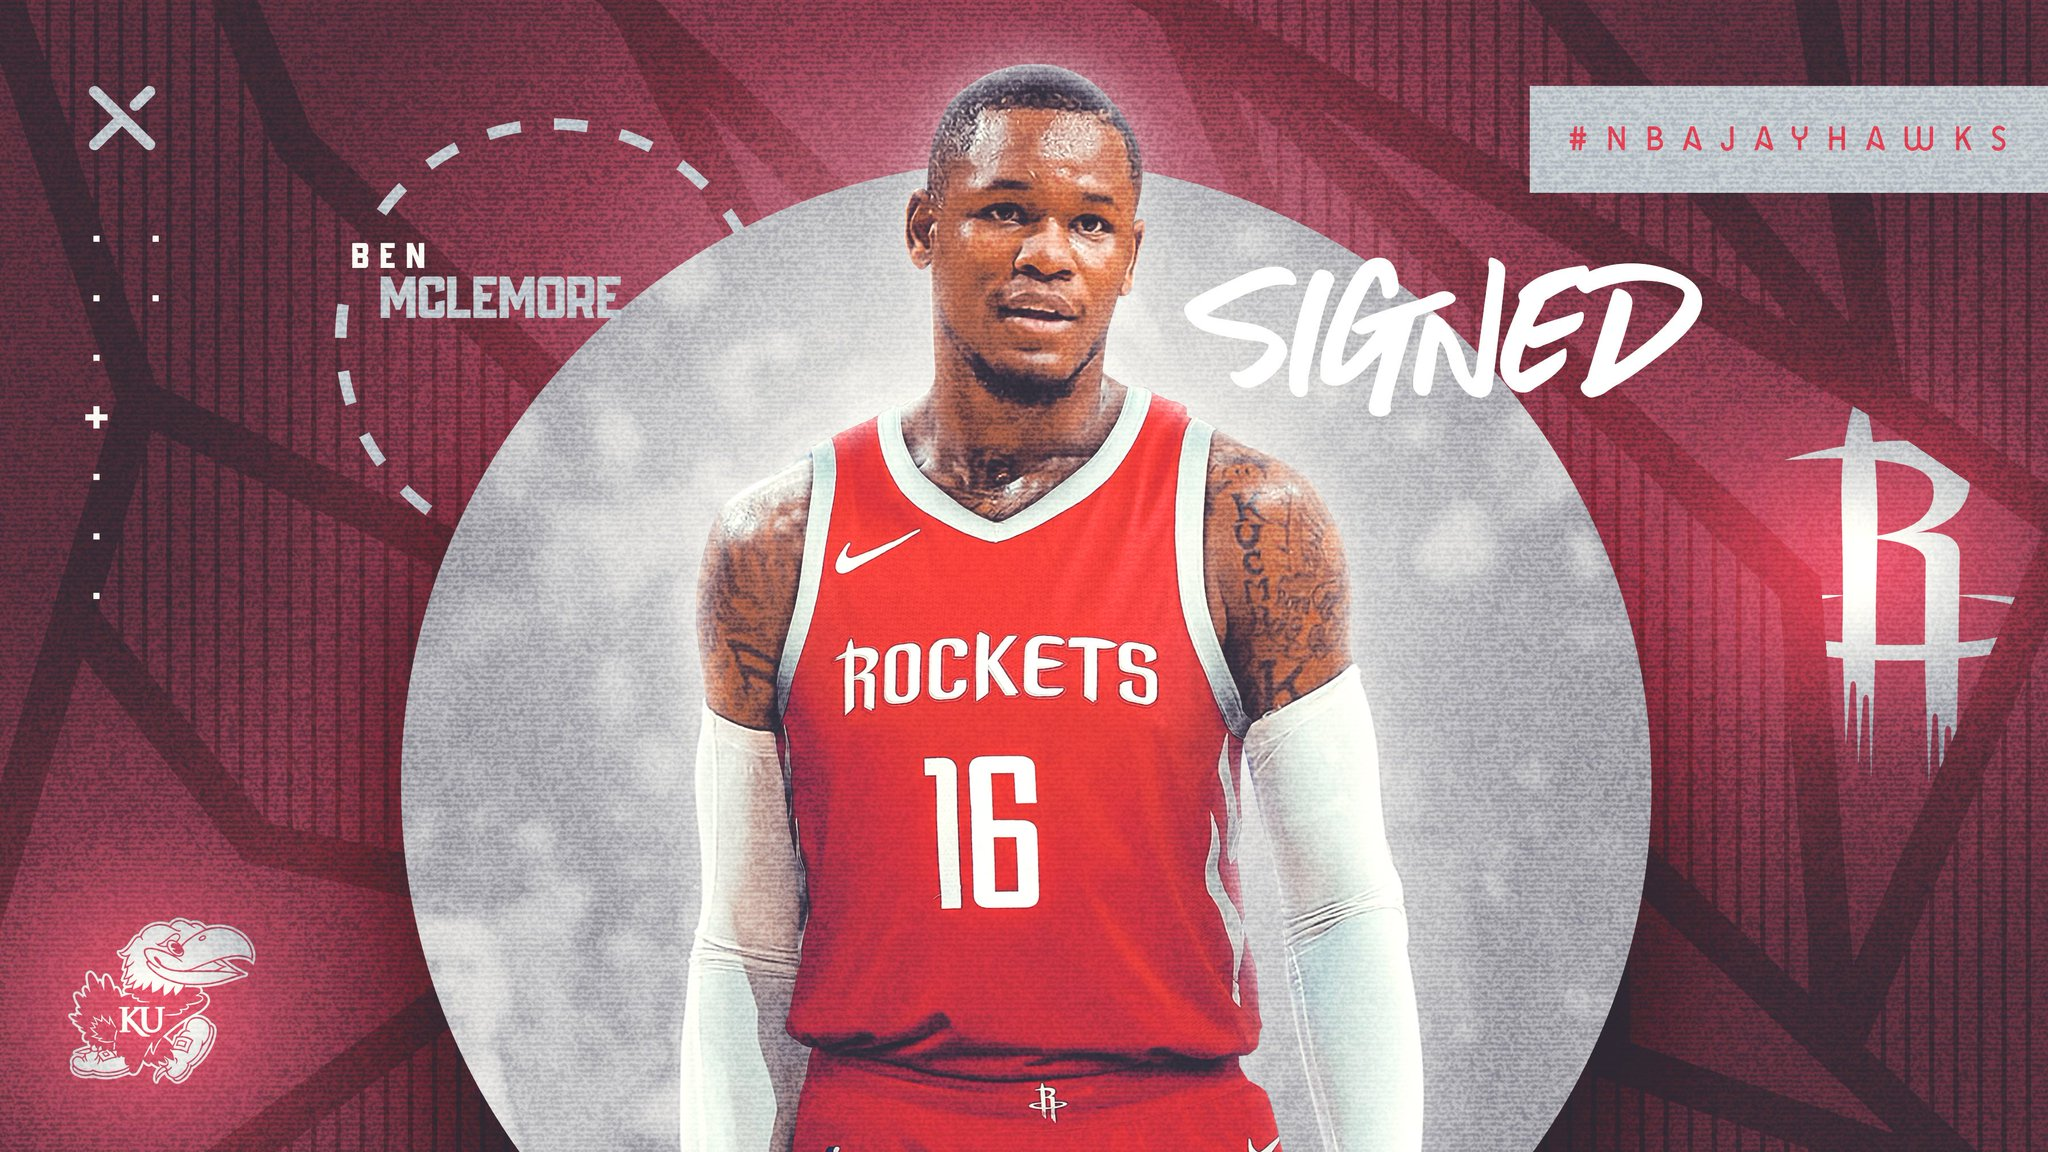 ben mclemore houston rockets sign graphic